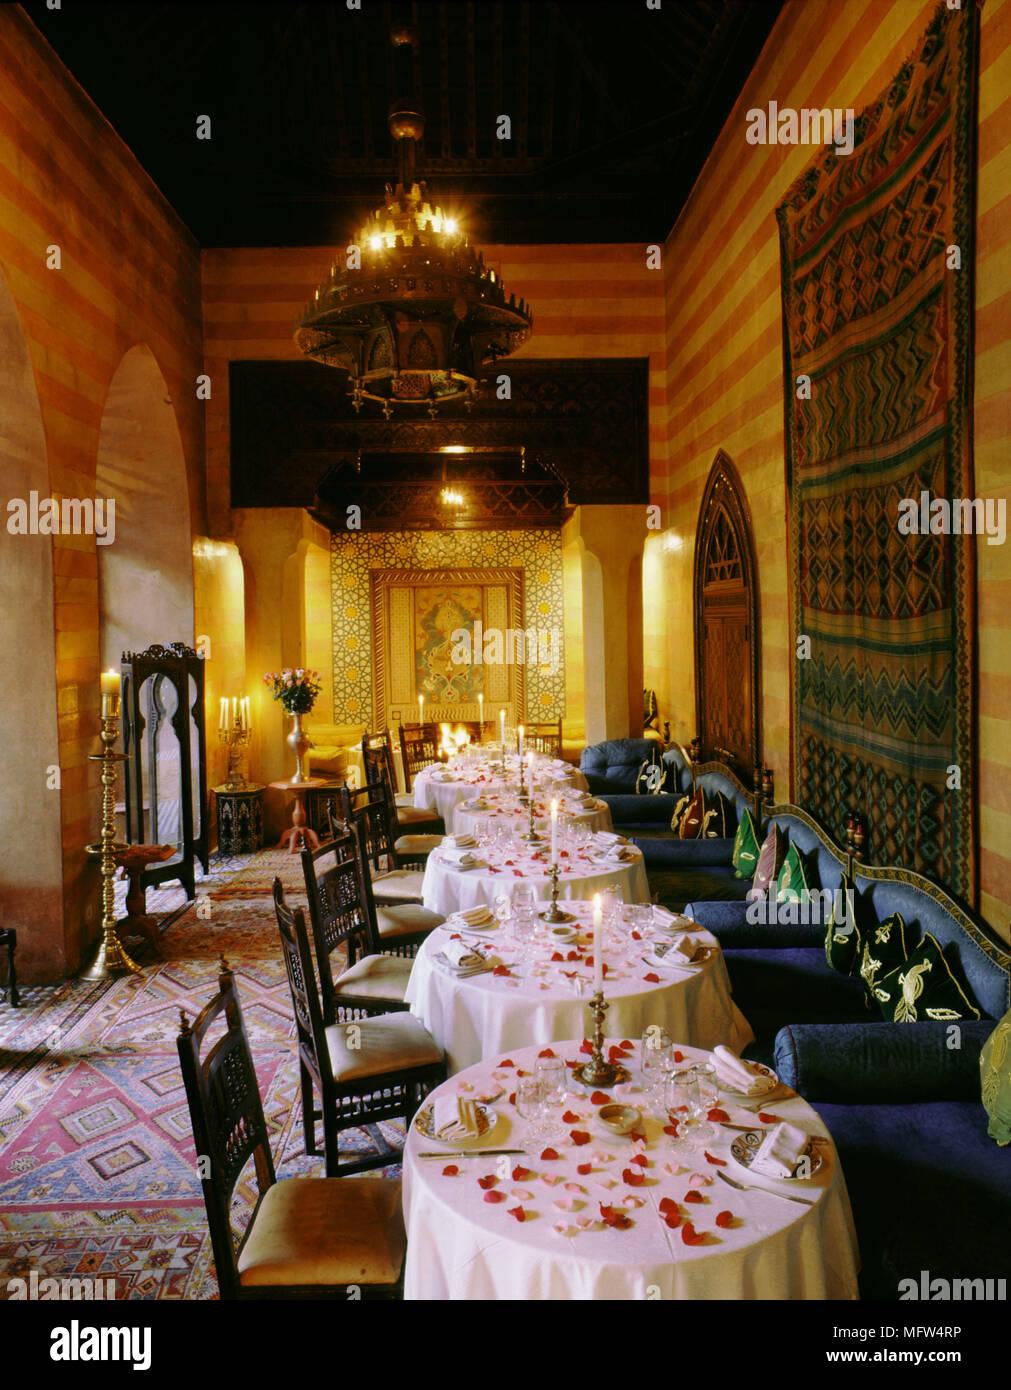 Interior Of The Yacout Restaurant Interiors Restaurants Moroccon Eastern Arabian Ambient